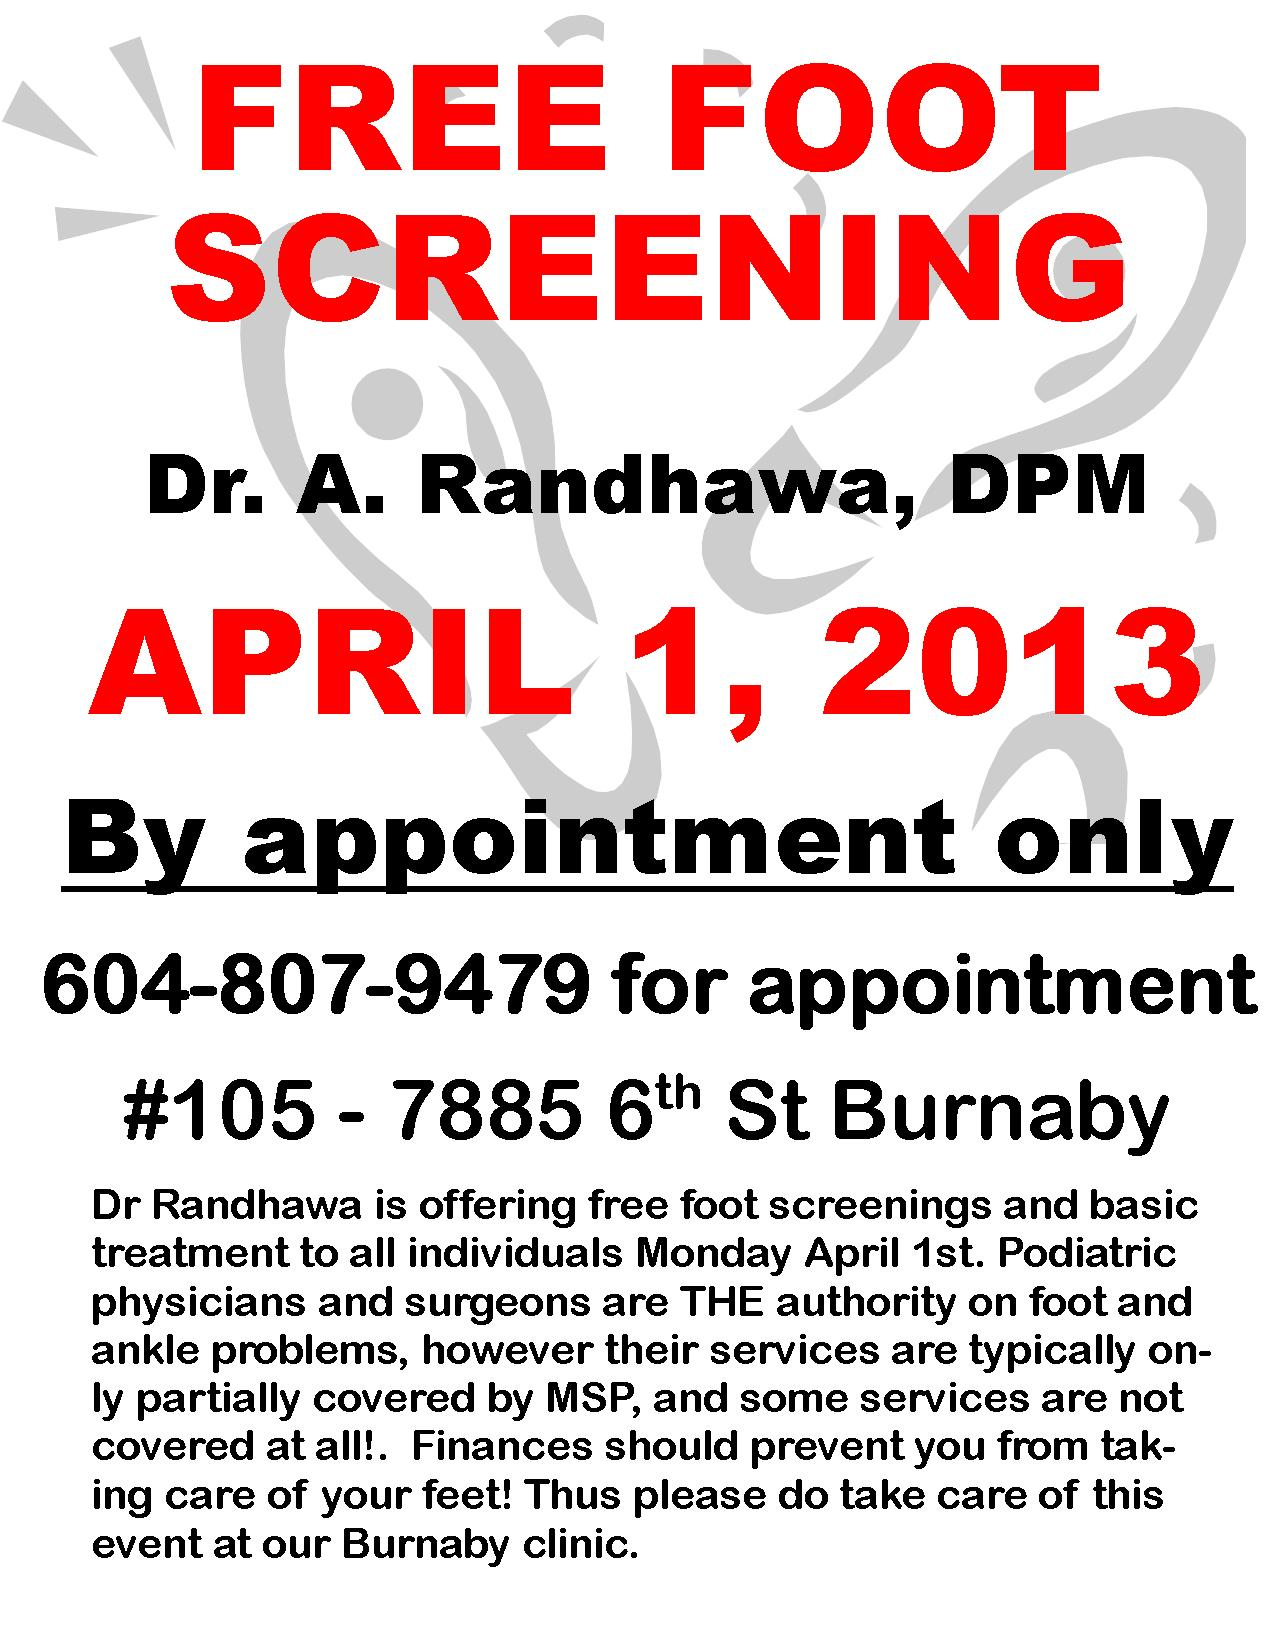 It's no April's Fool's Day Joke! Free Foot Screening's and basic treatment in Burnaby on April 1, 2013